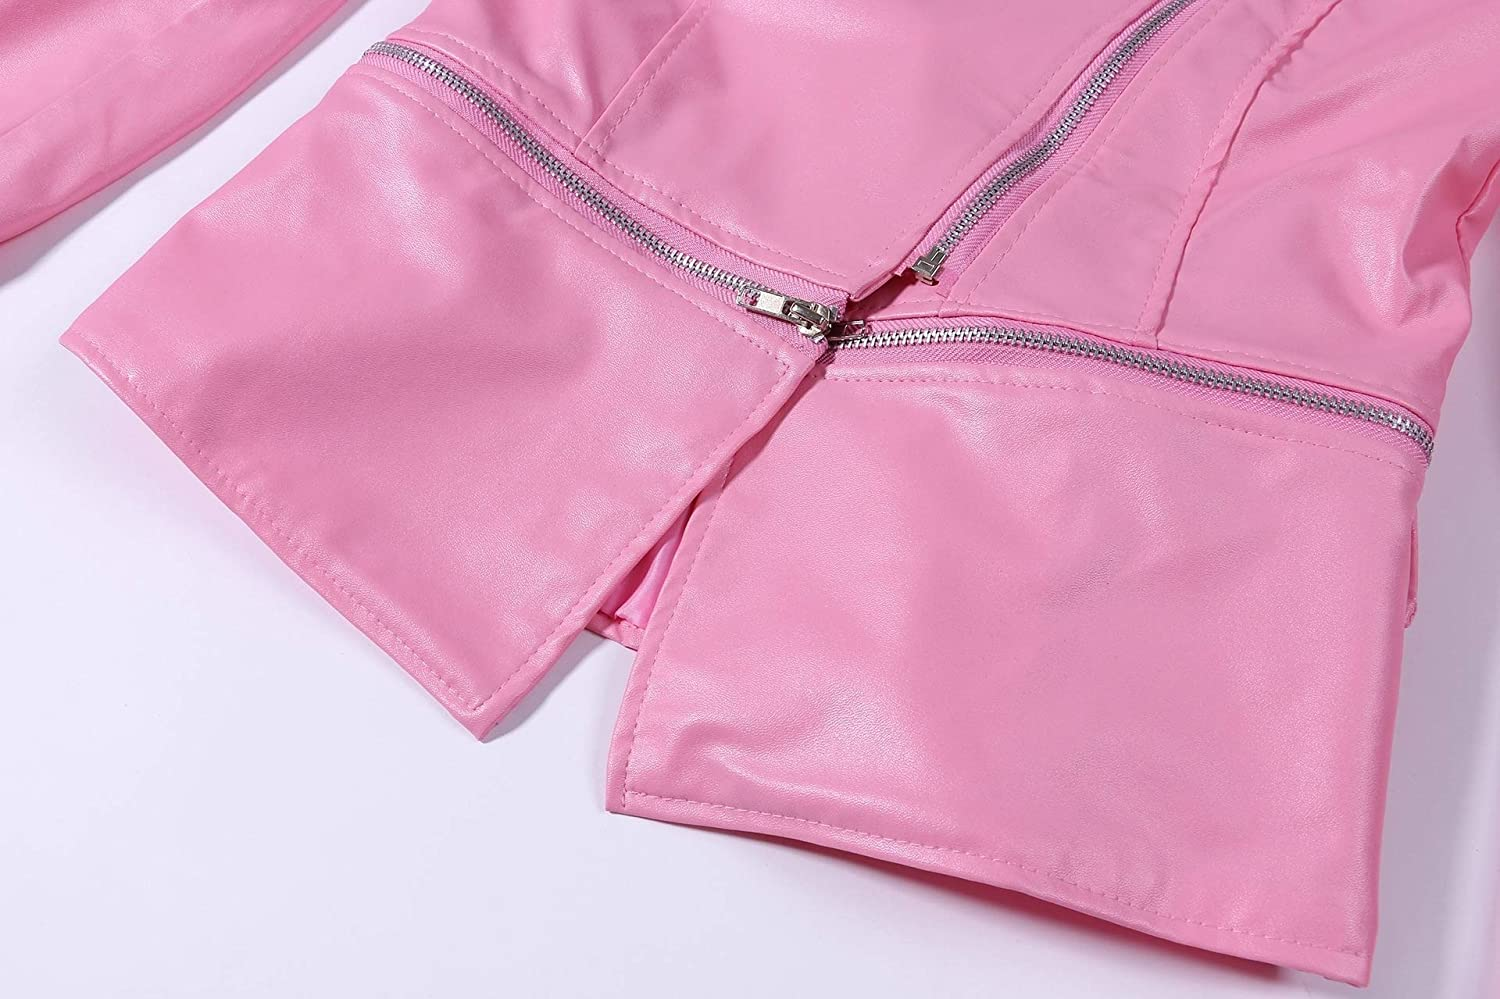 MirrliyWomen Curvy Zip Up Pure Color Personalized PU Outwear